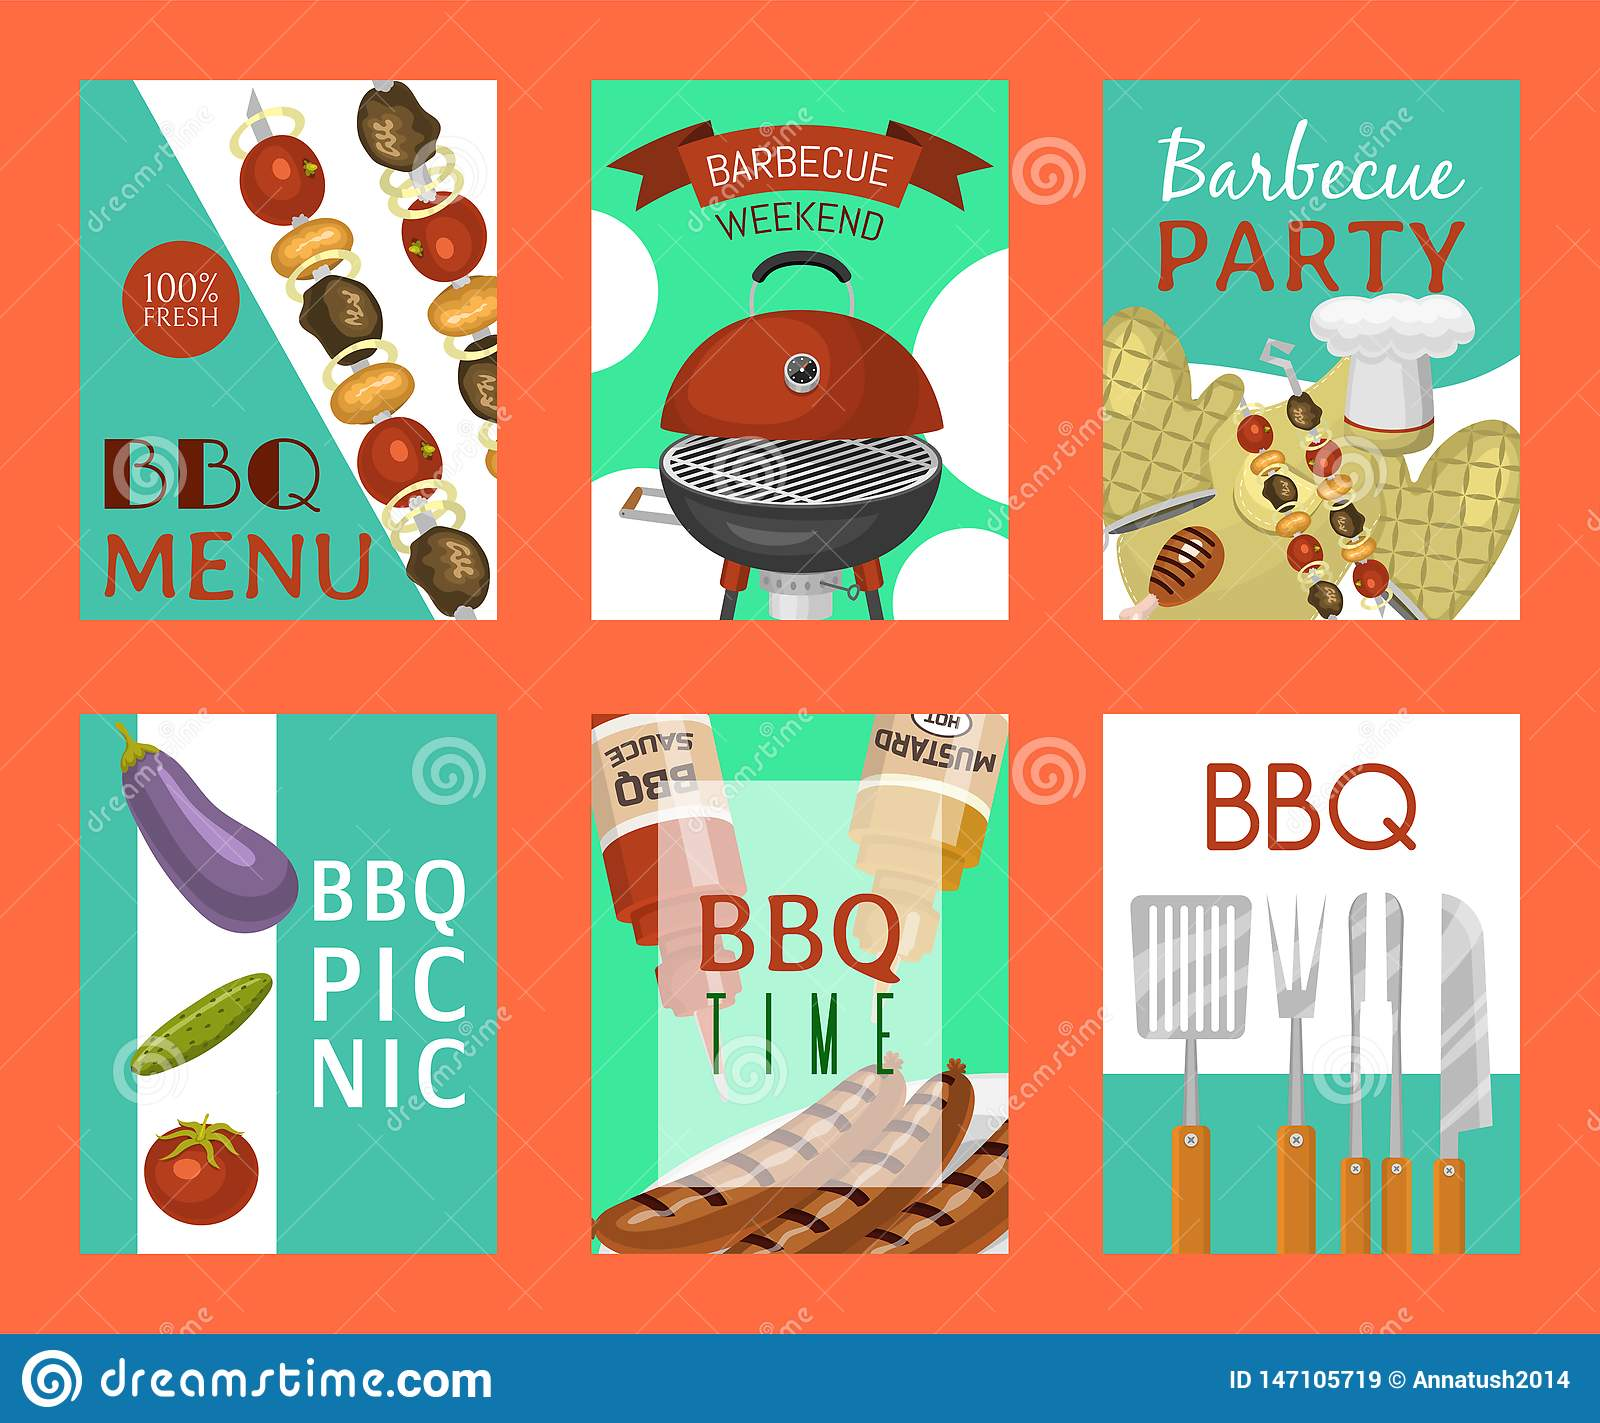 Barbeque picnic party cards meat steak roasted on round hot barbecue grill vector illustration. Bbq in park, banner